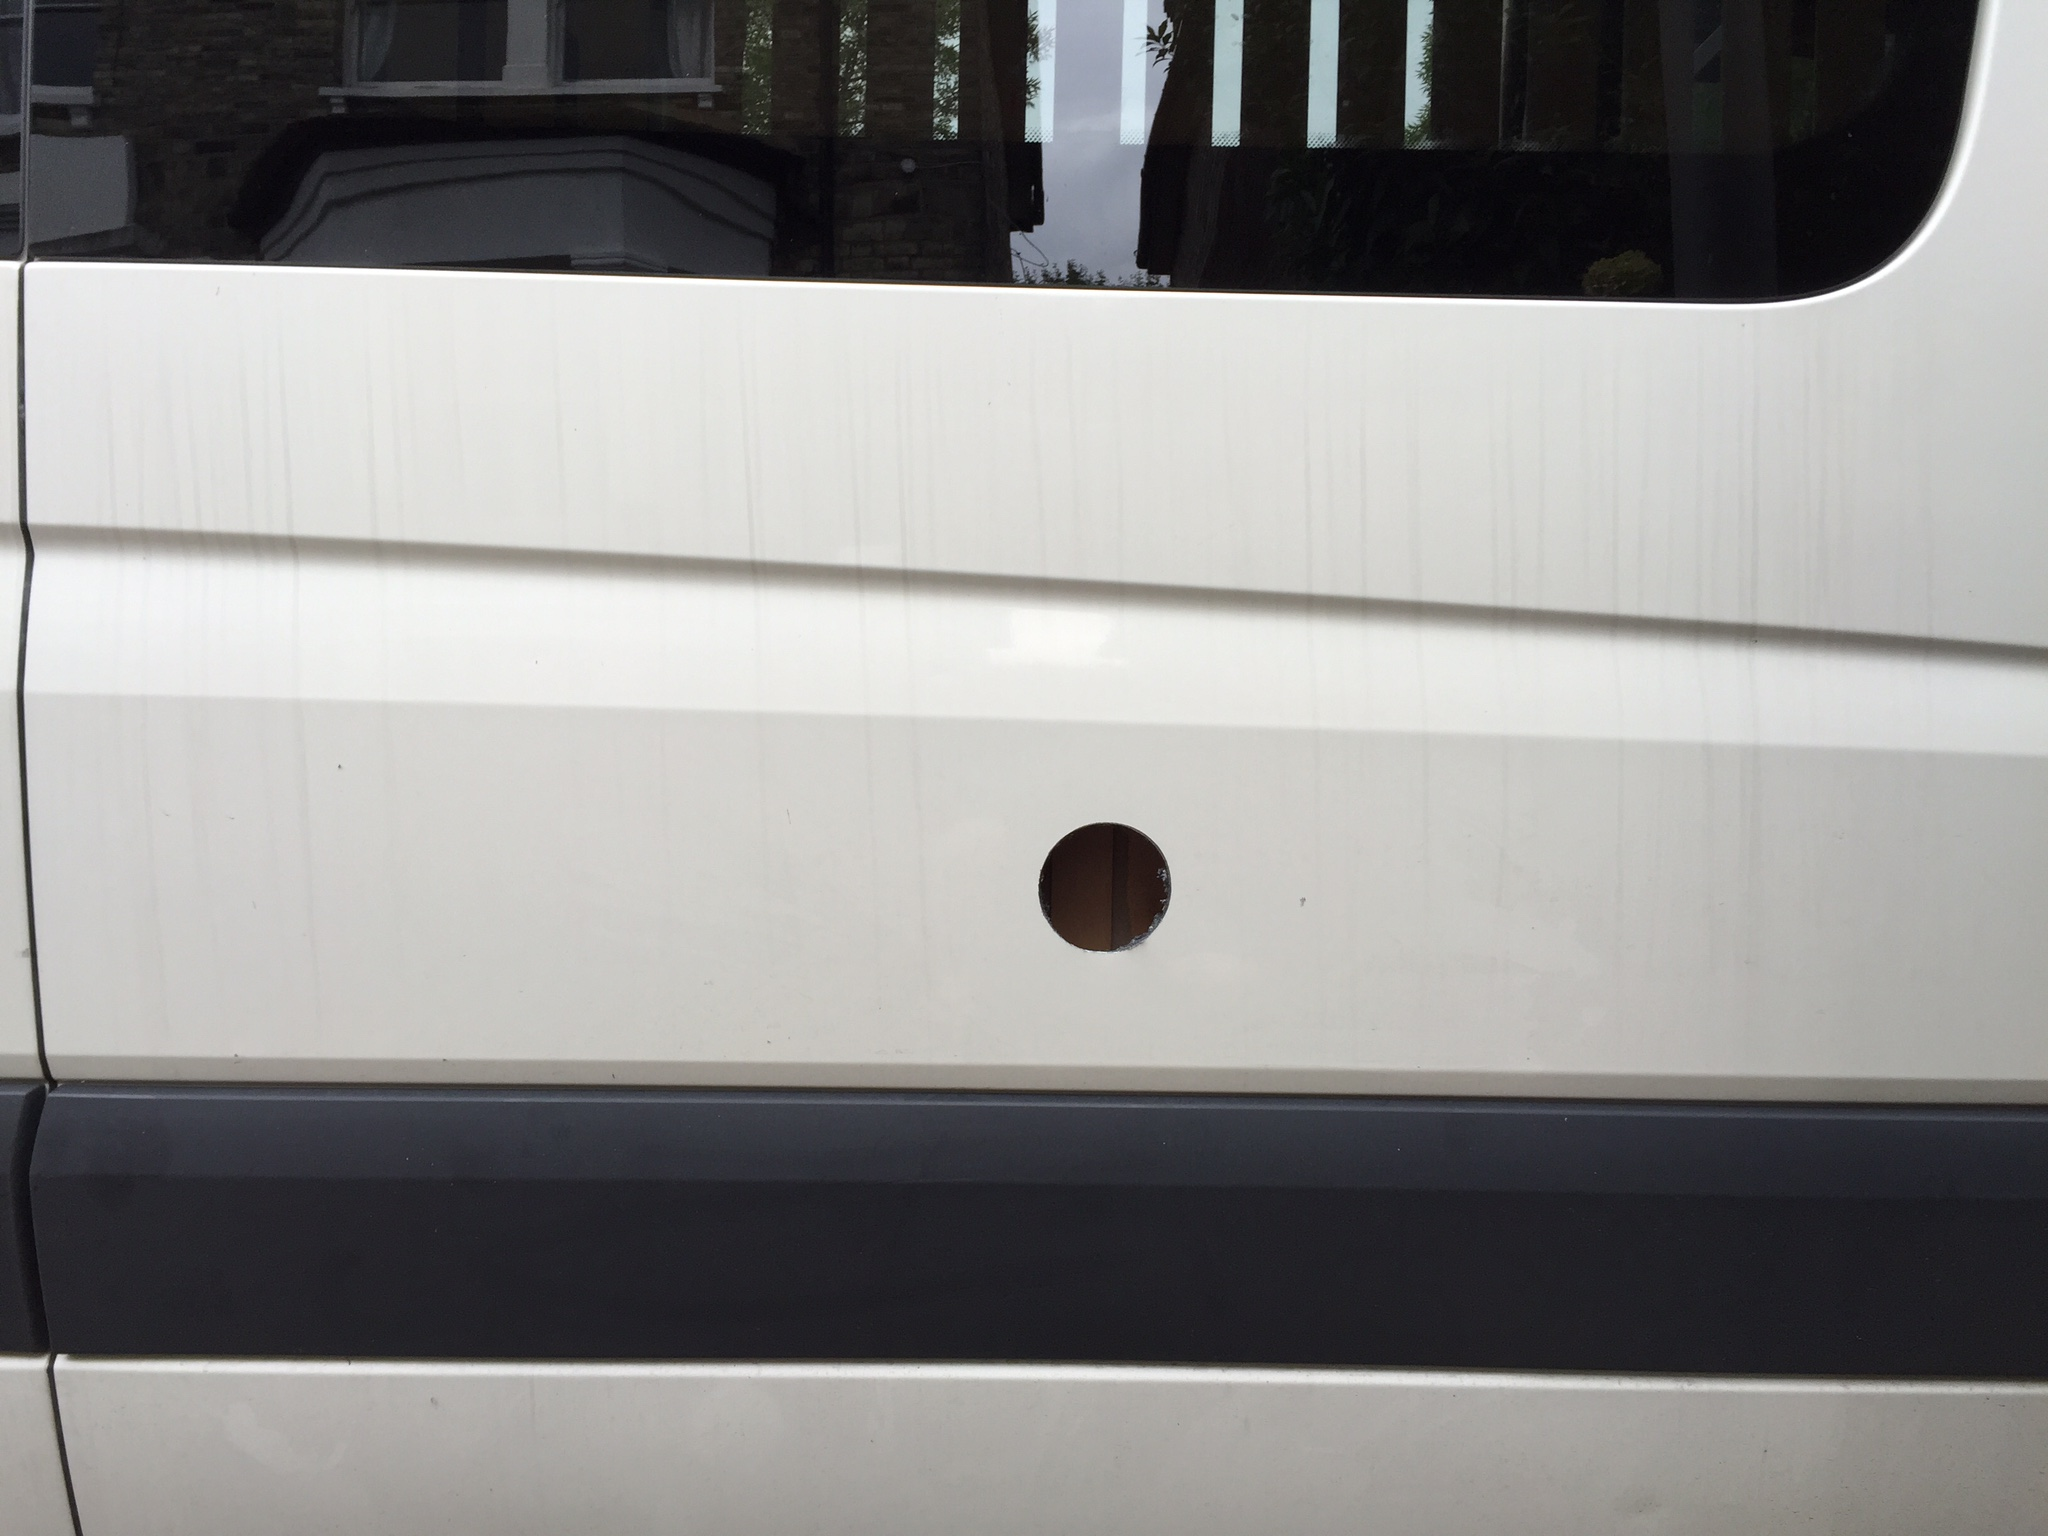 Hole in the van for electric hook-up